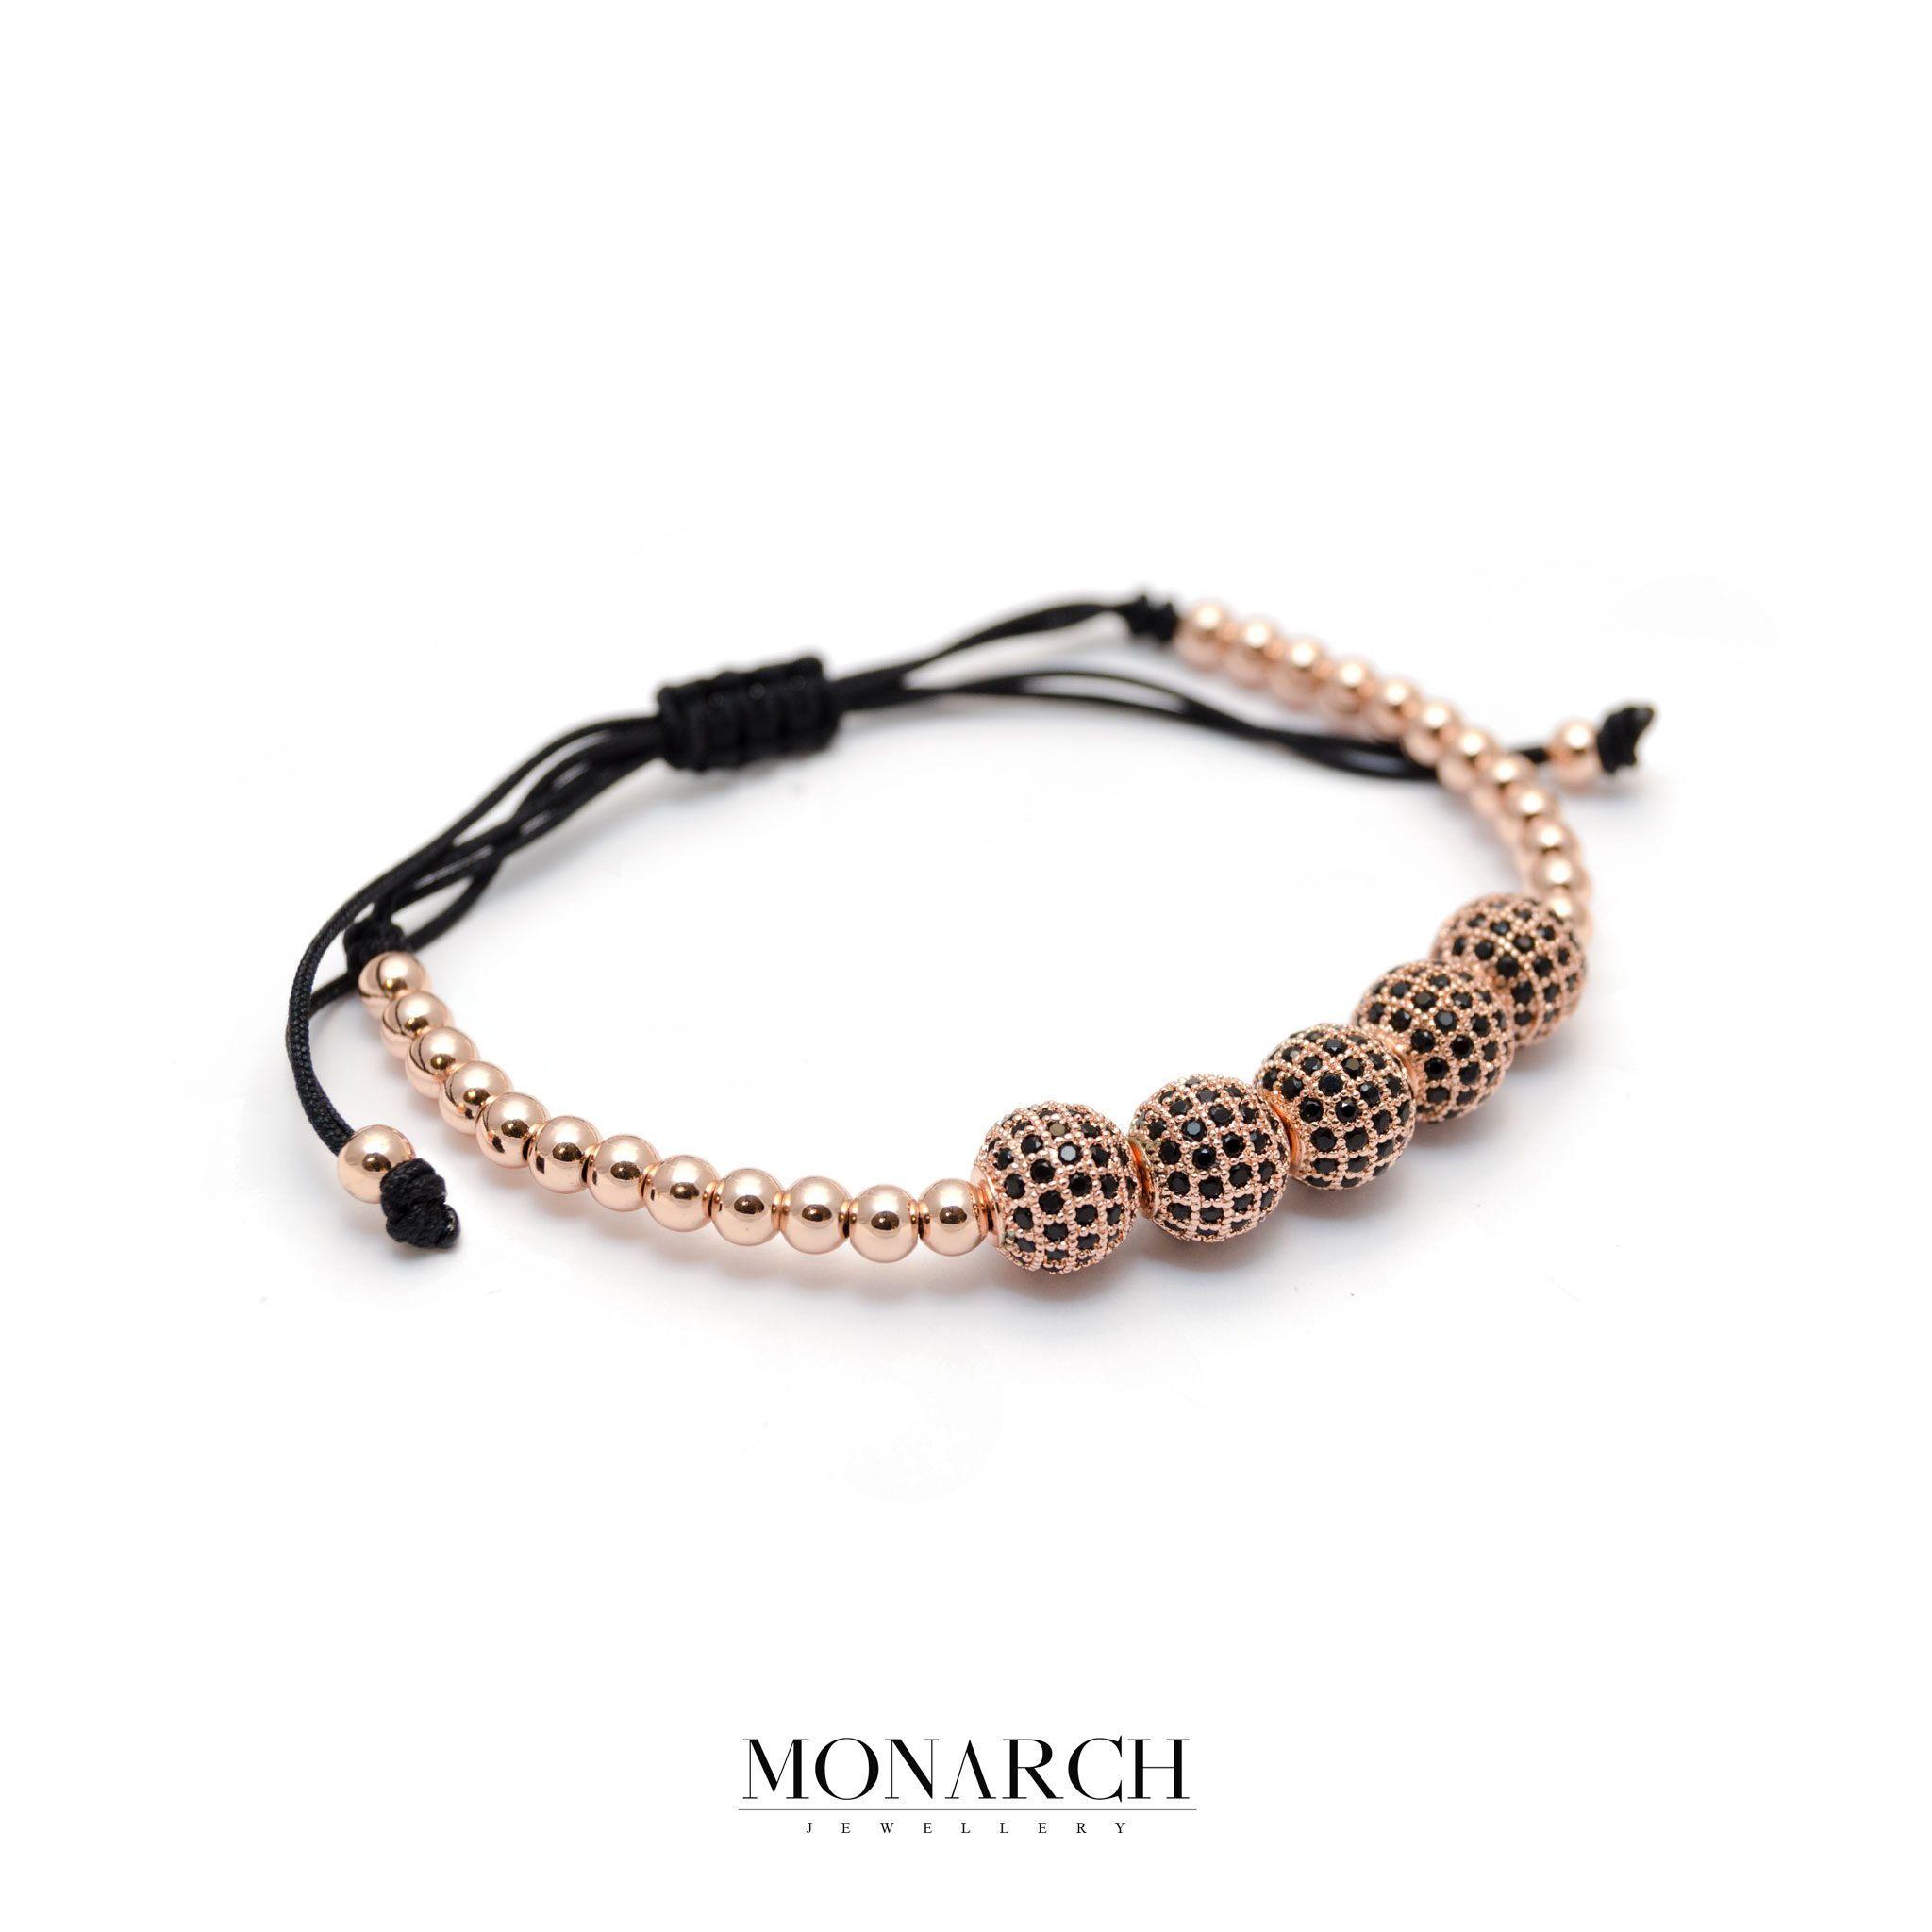 Monarch Jewellery Gold Rose Zircon Bead Macrame Bracelet